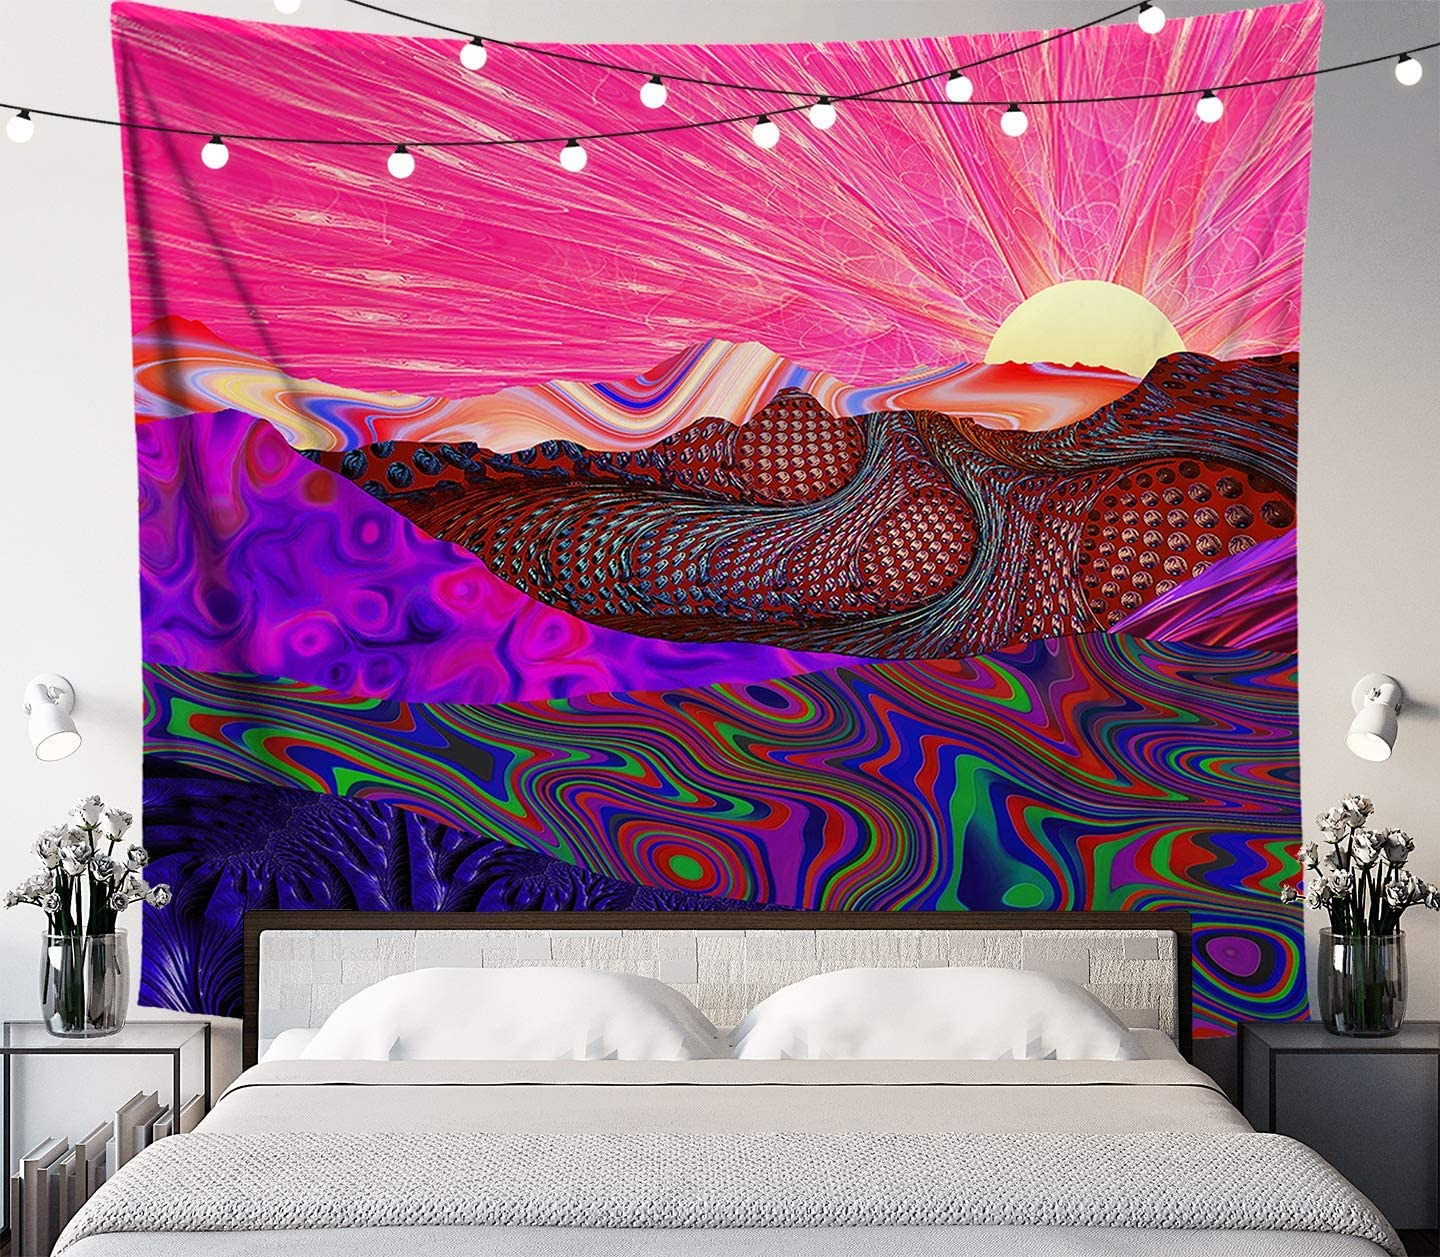 Trippy Trek Tapestry, Psychedelic Mountain Sunrise Wall Hanging for Bedroom Living Room Dorm, 58x51 inches